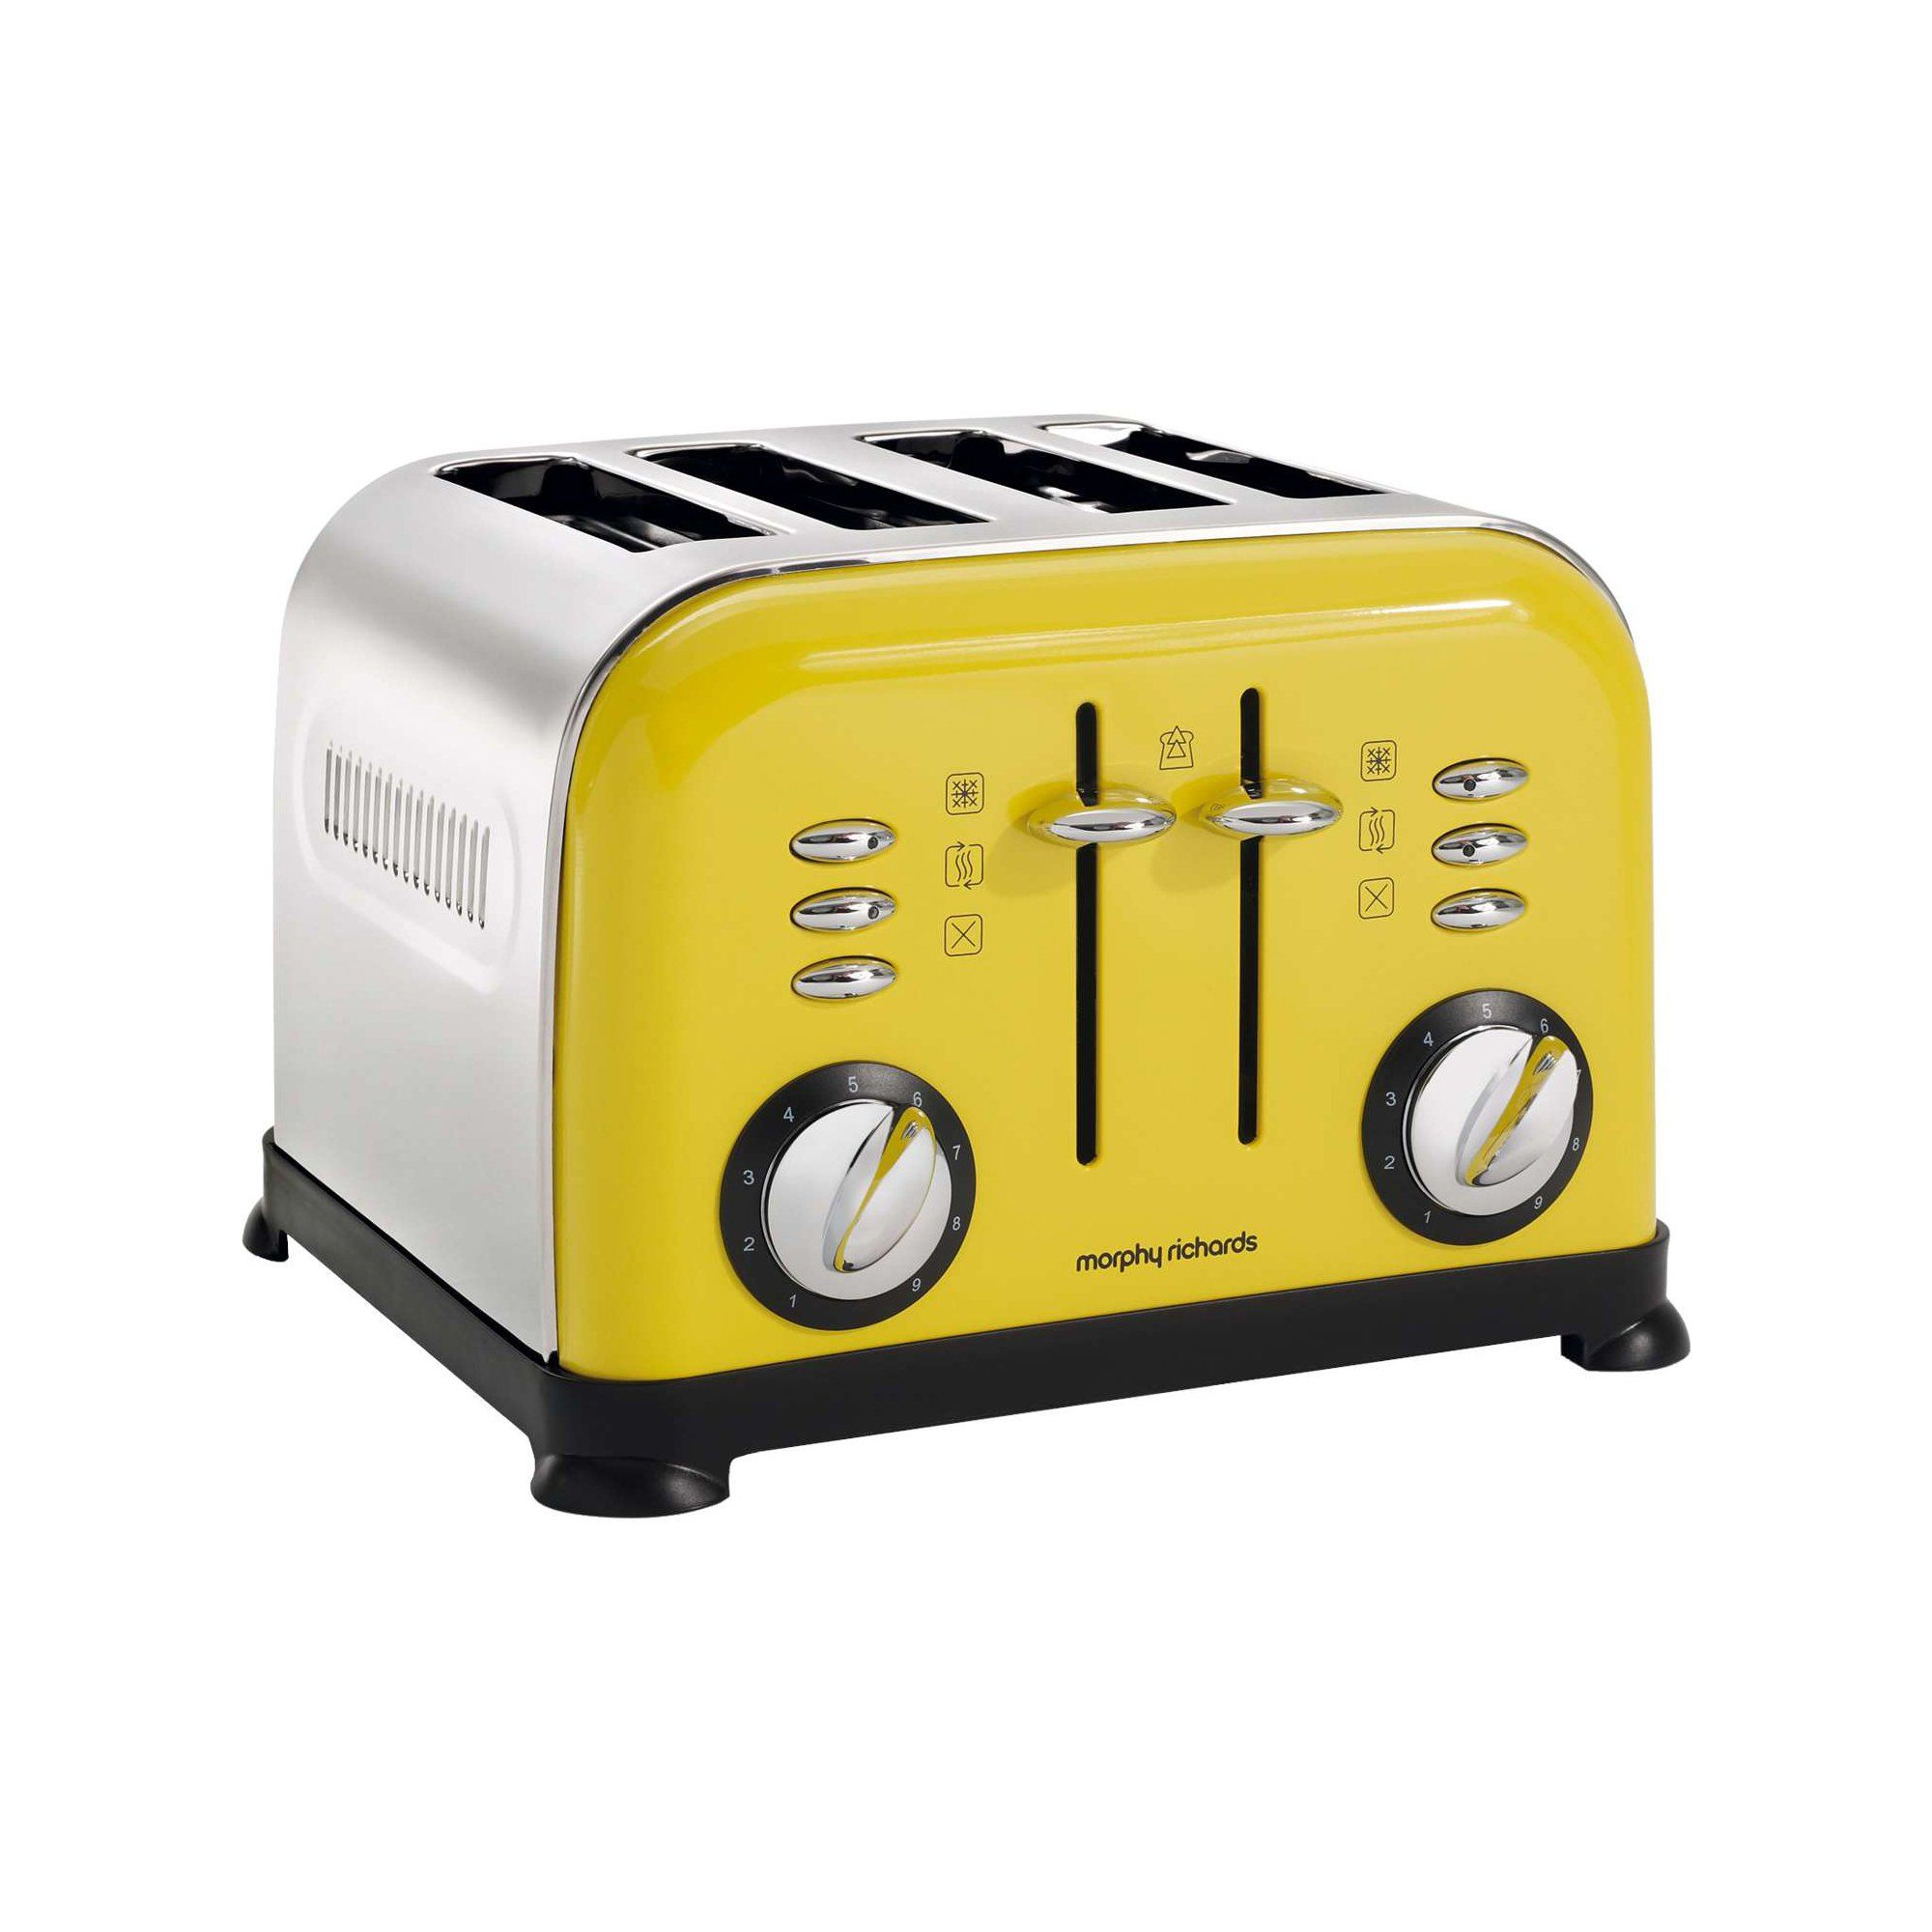 savoy pin and toasters tabletop four stainless steel slice toaster